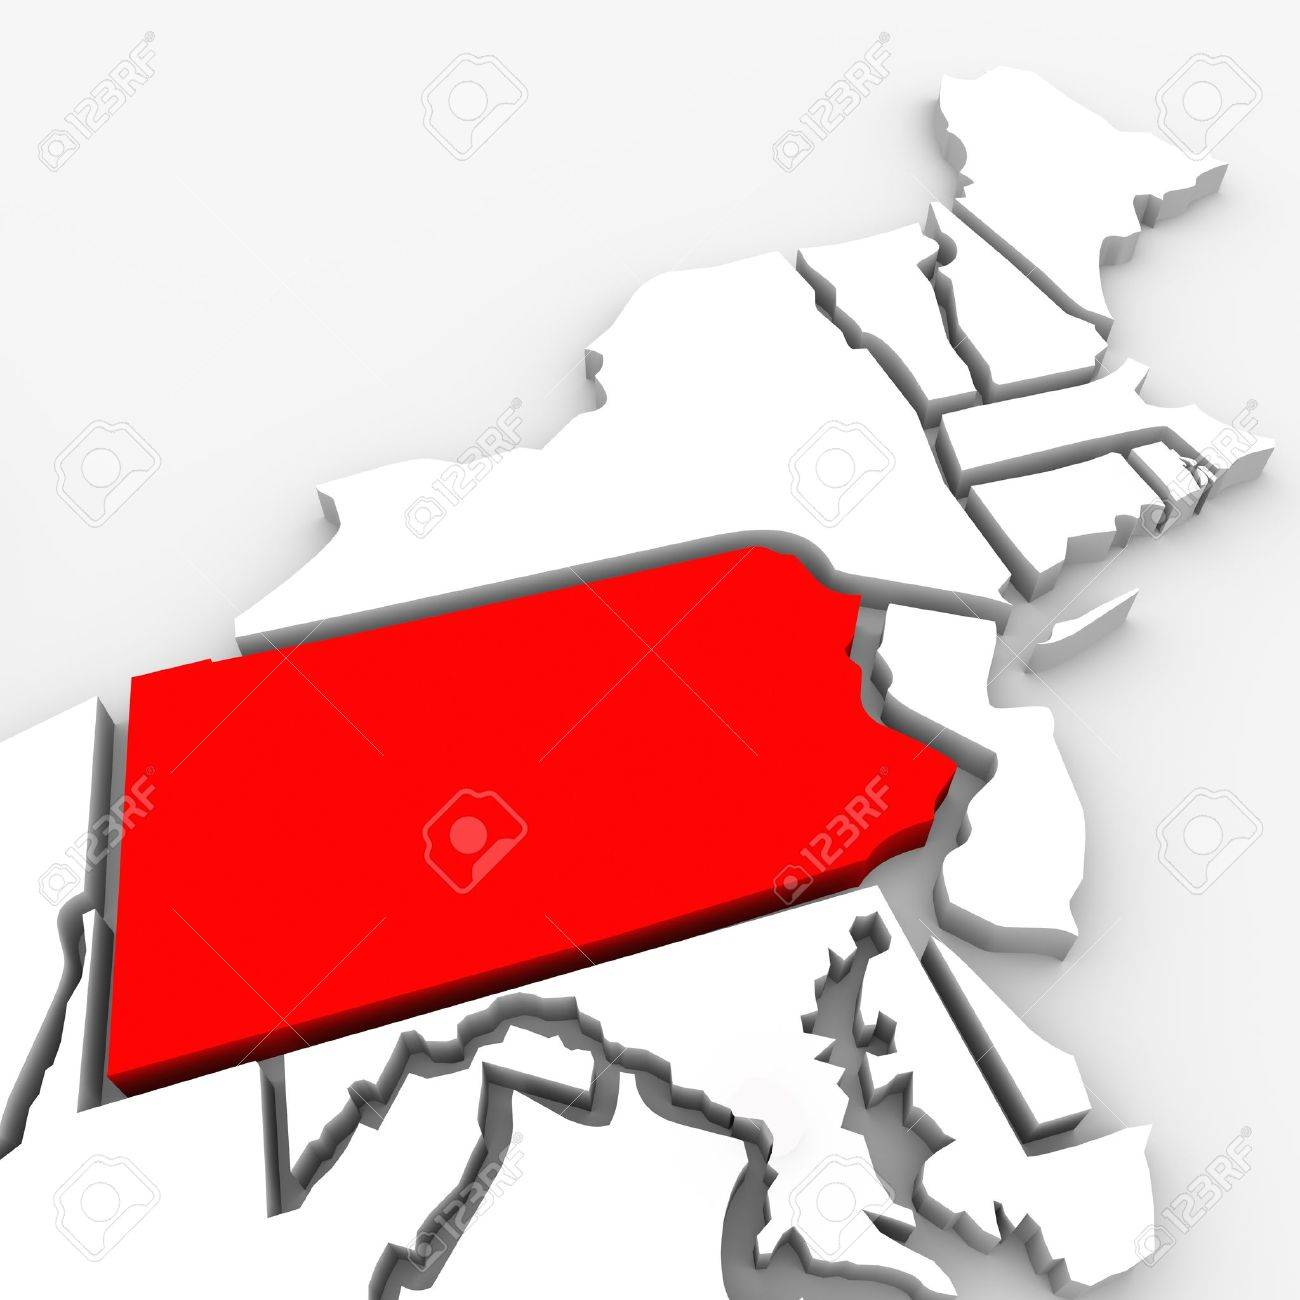 United States Outline Stock Photos  Pictures Royalty Free United - Free united states map graphic